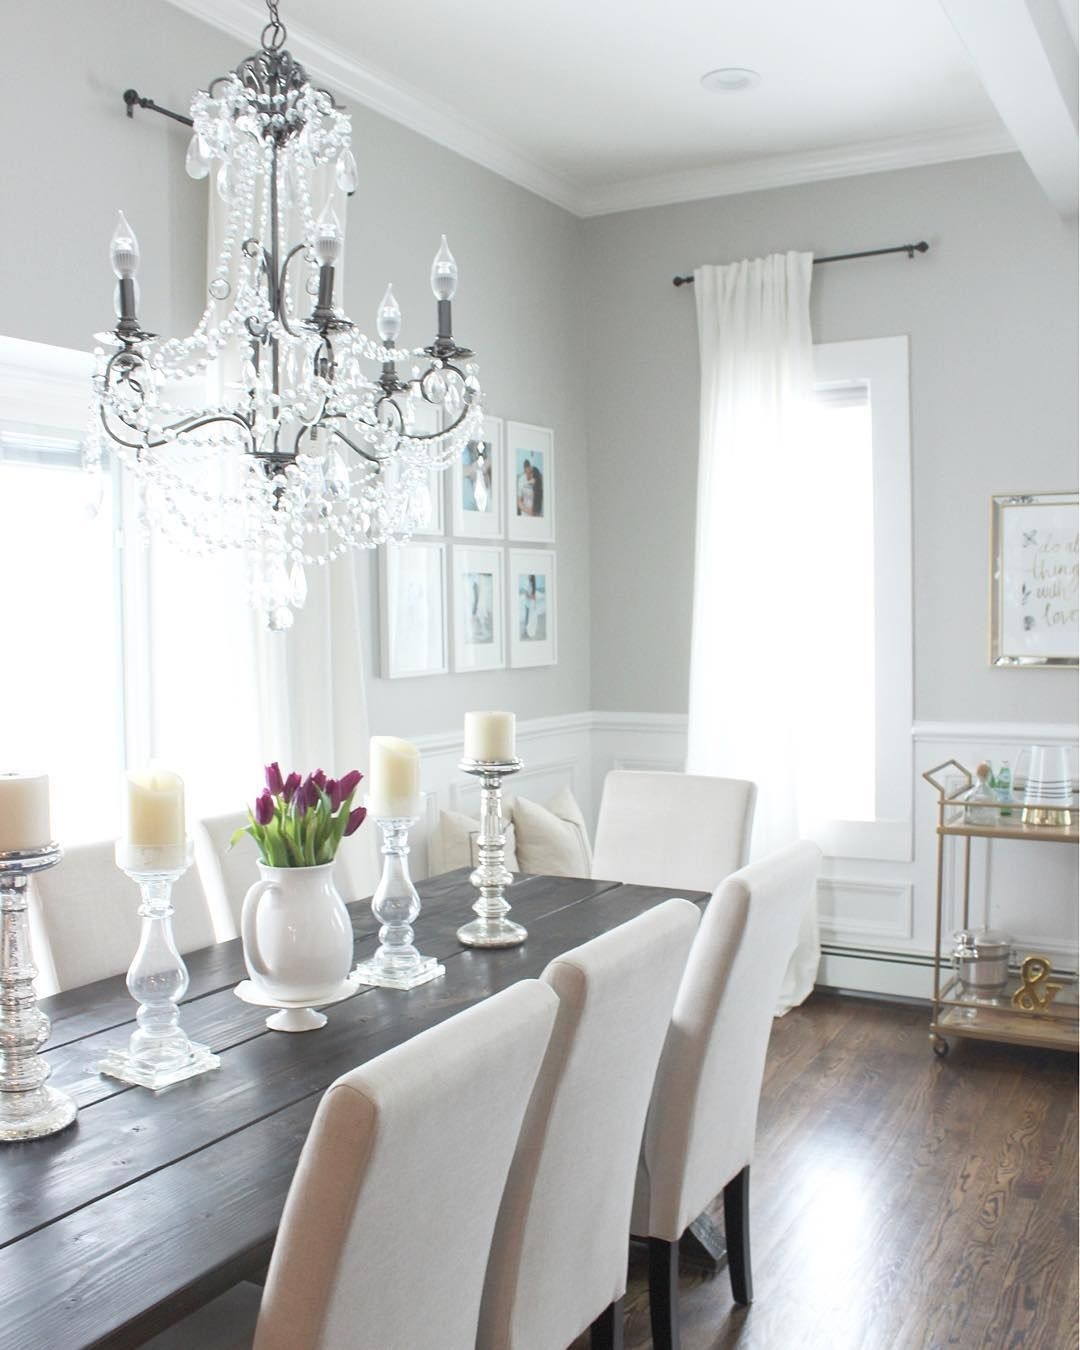 Jaclynmari On Instagram Baby It S Cold Outside Being Snowed In Means A Full Day Of C Grey Dining Room Farmhouse Dining Room Dining Room Furniture Sets